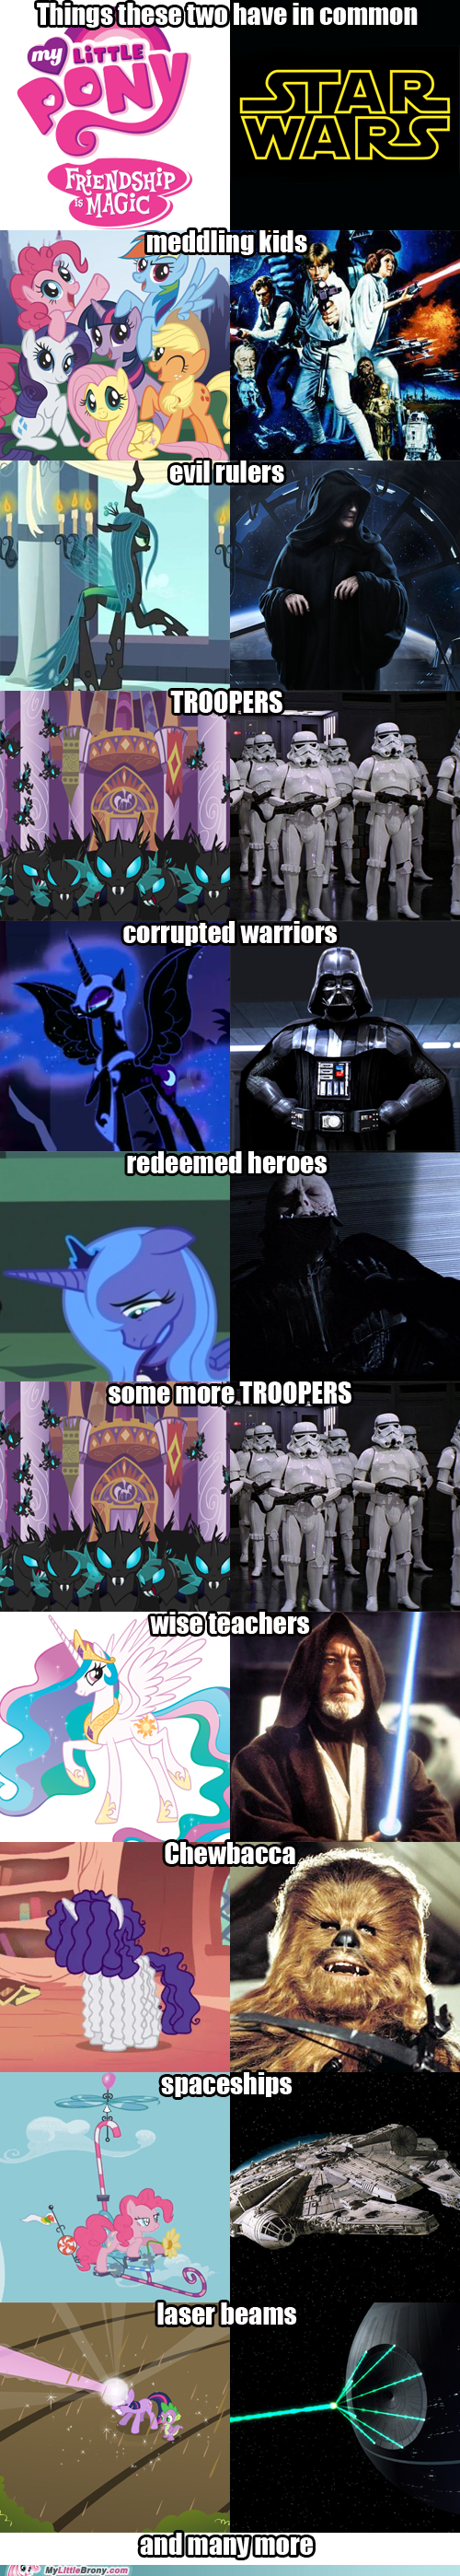 best of week fandom my little pony star wars the internets things in common - 6279891456